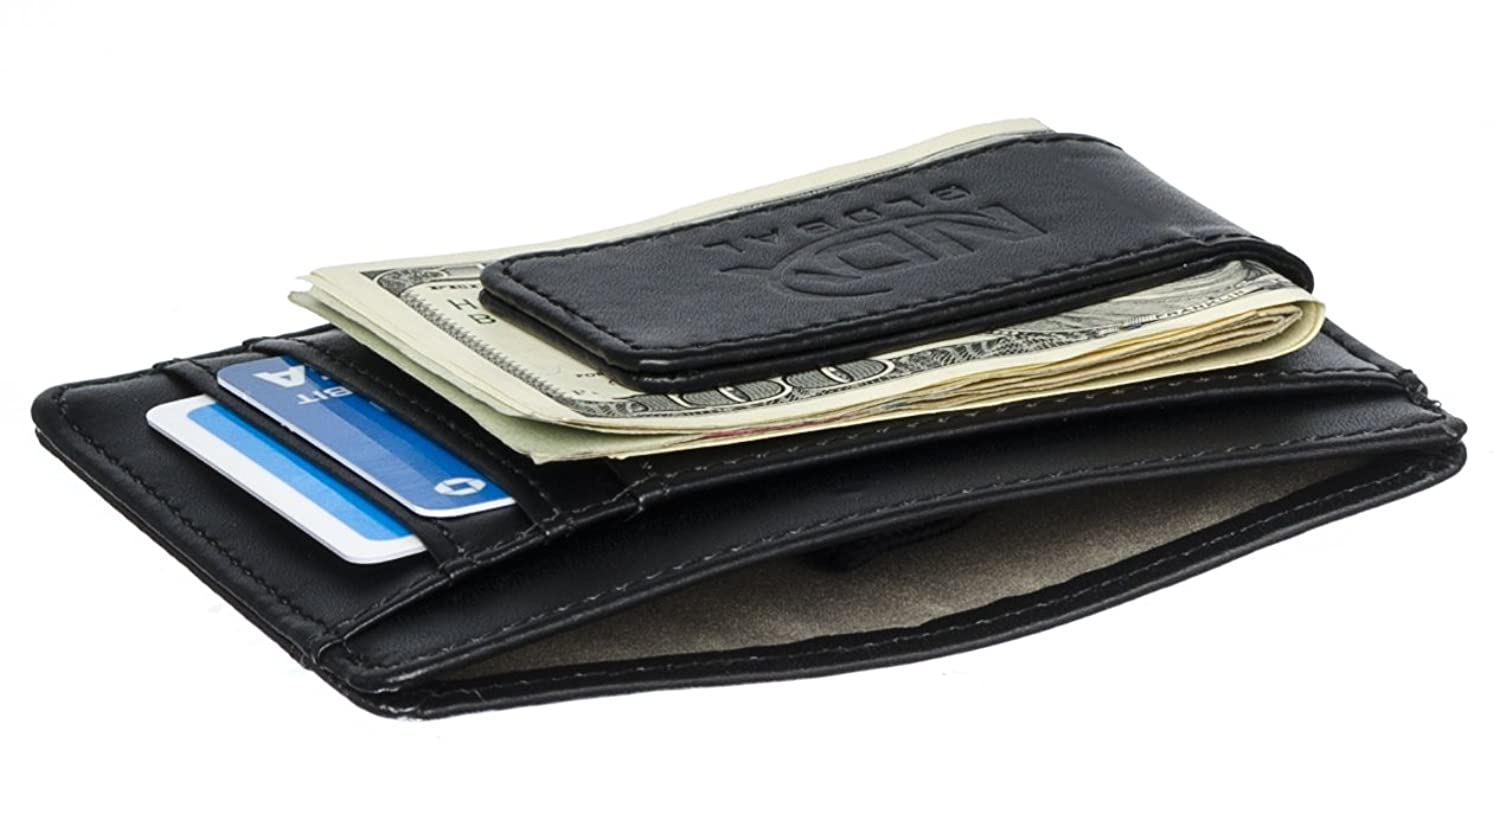 High Quality Leather Magentic Money Clip Wallet & Credit Card Holder w/ RFID Blocking Technology.